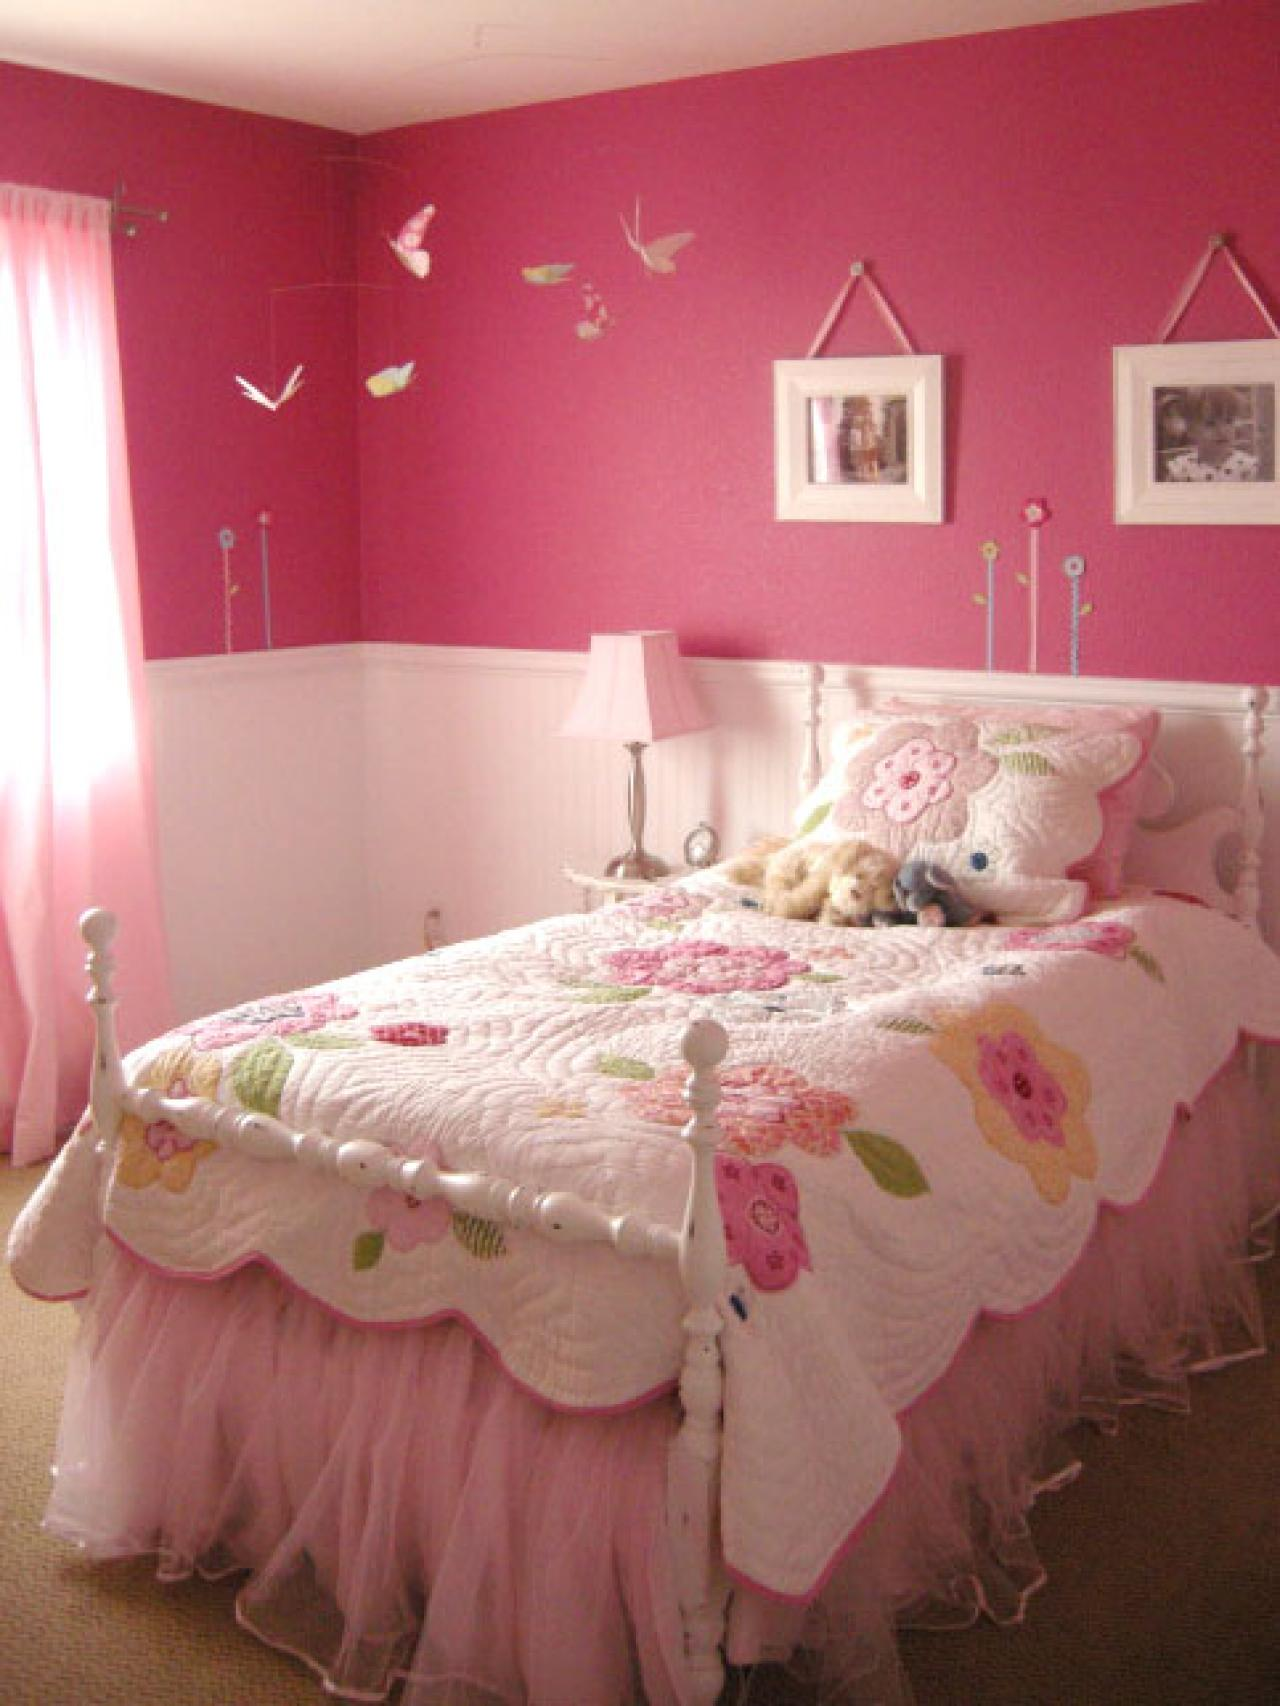 Pink Color Combinations Kids Bedroom Pastel Bedcover Pillows Light Wall Pictures